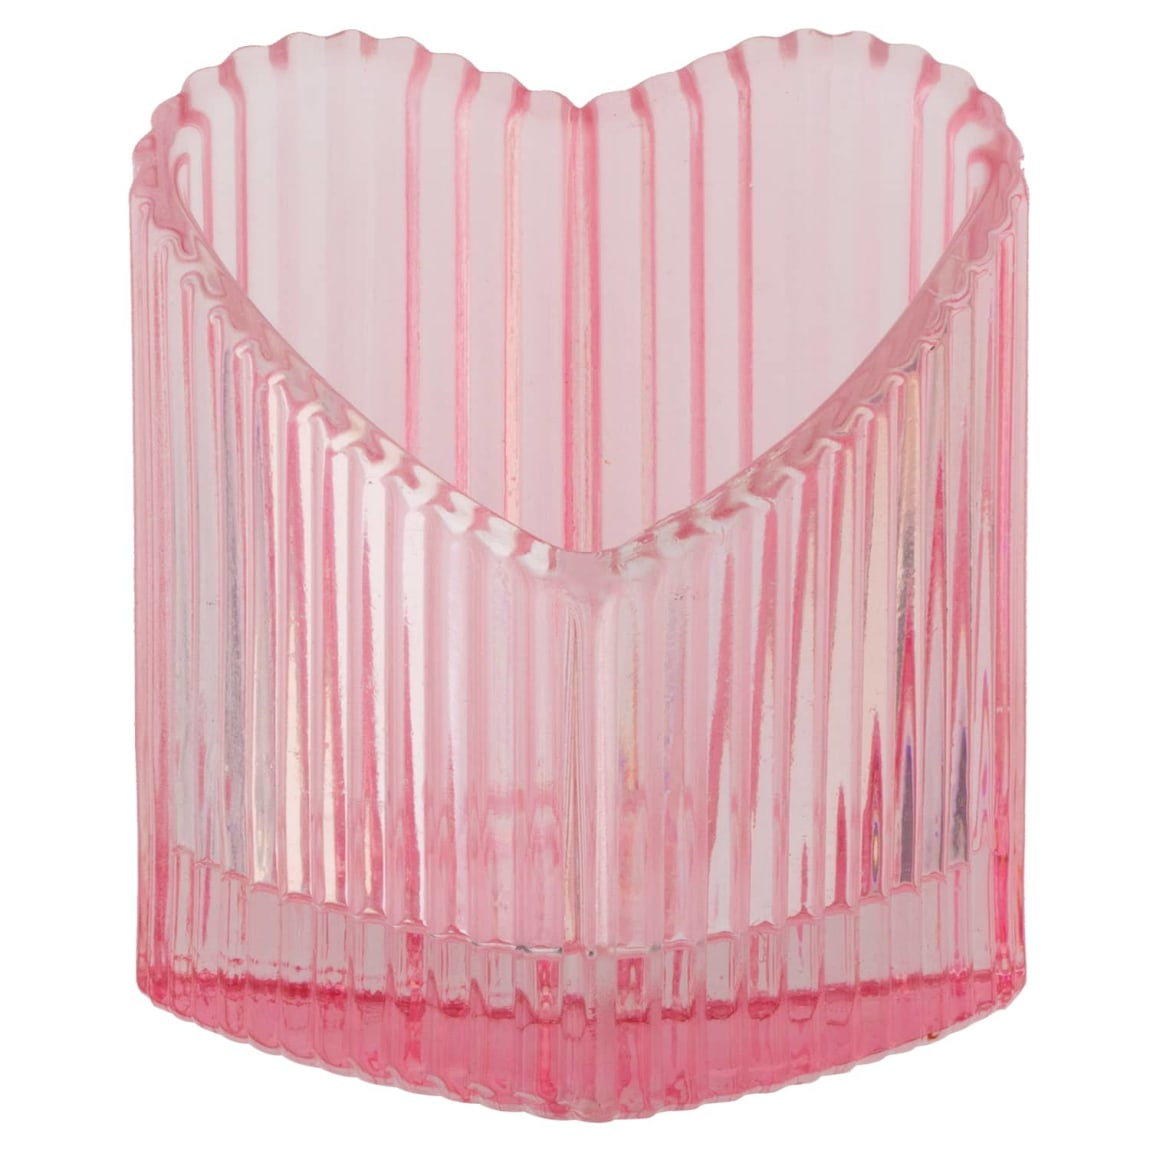 Glass Heart Tealight Candle Holder - Pink